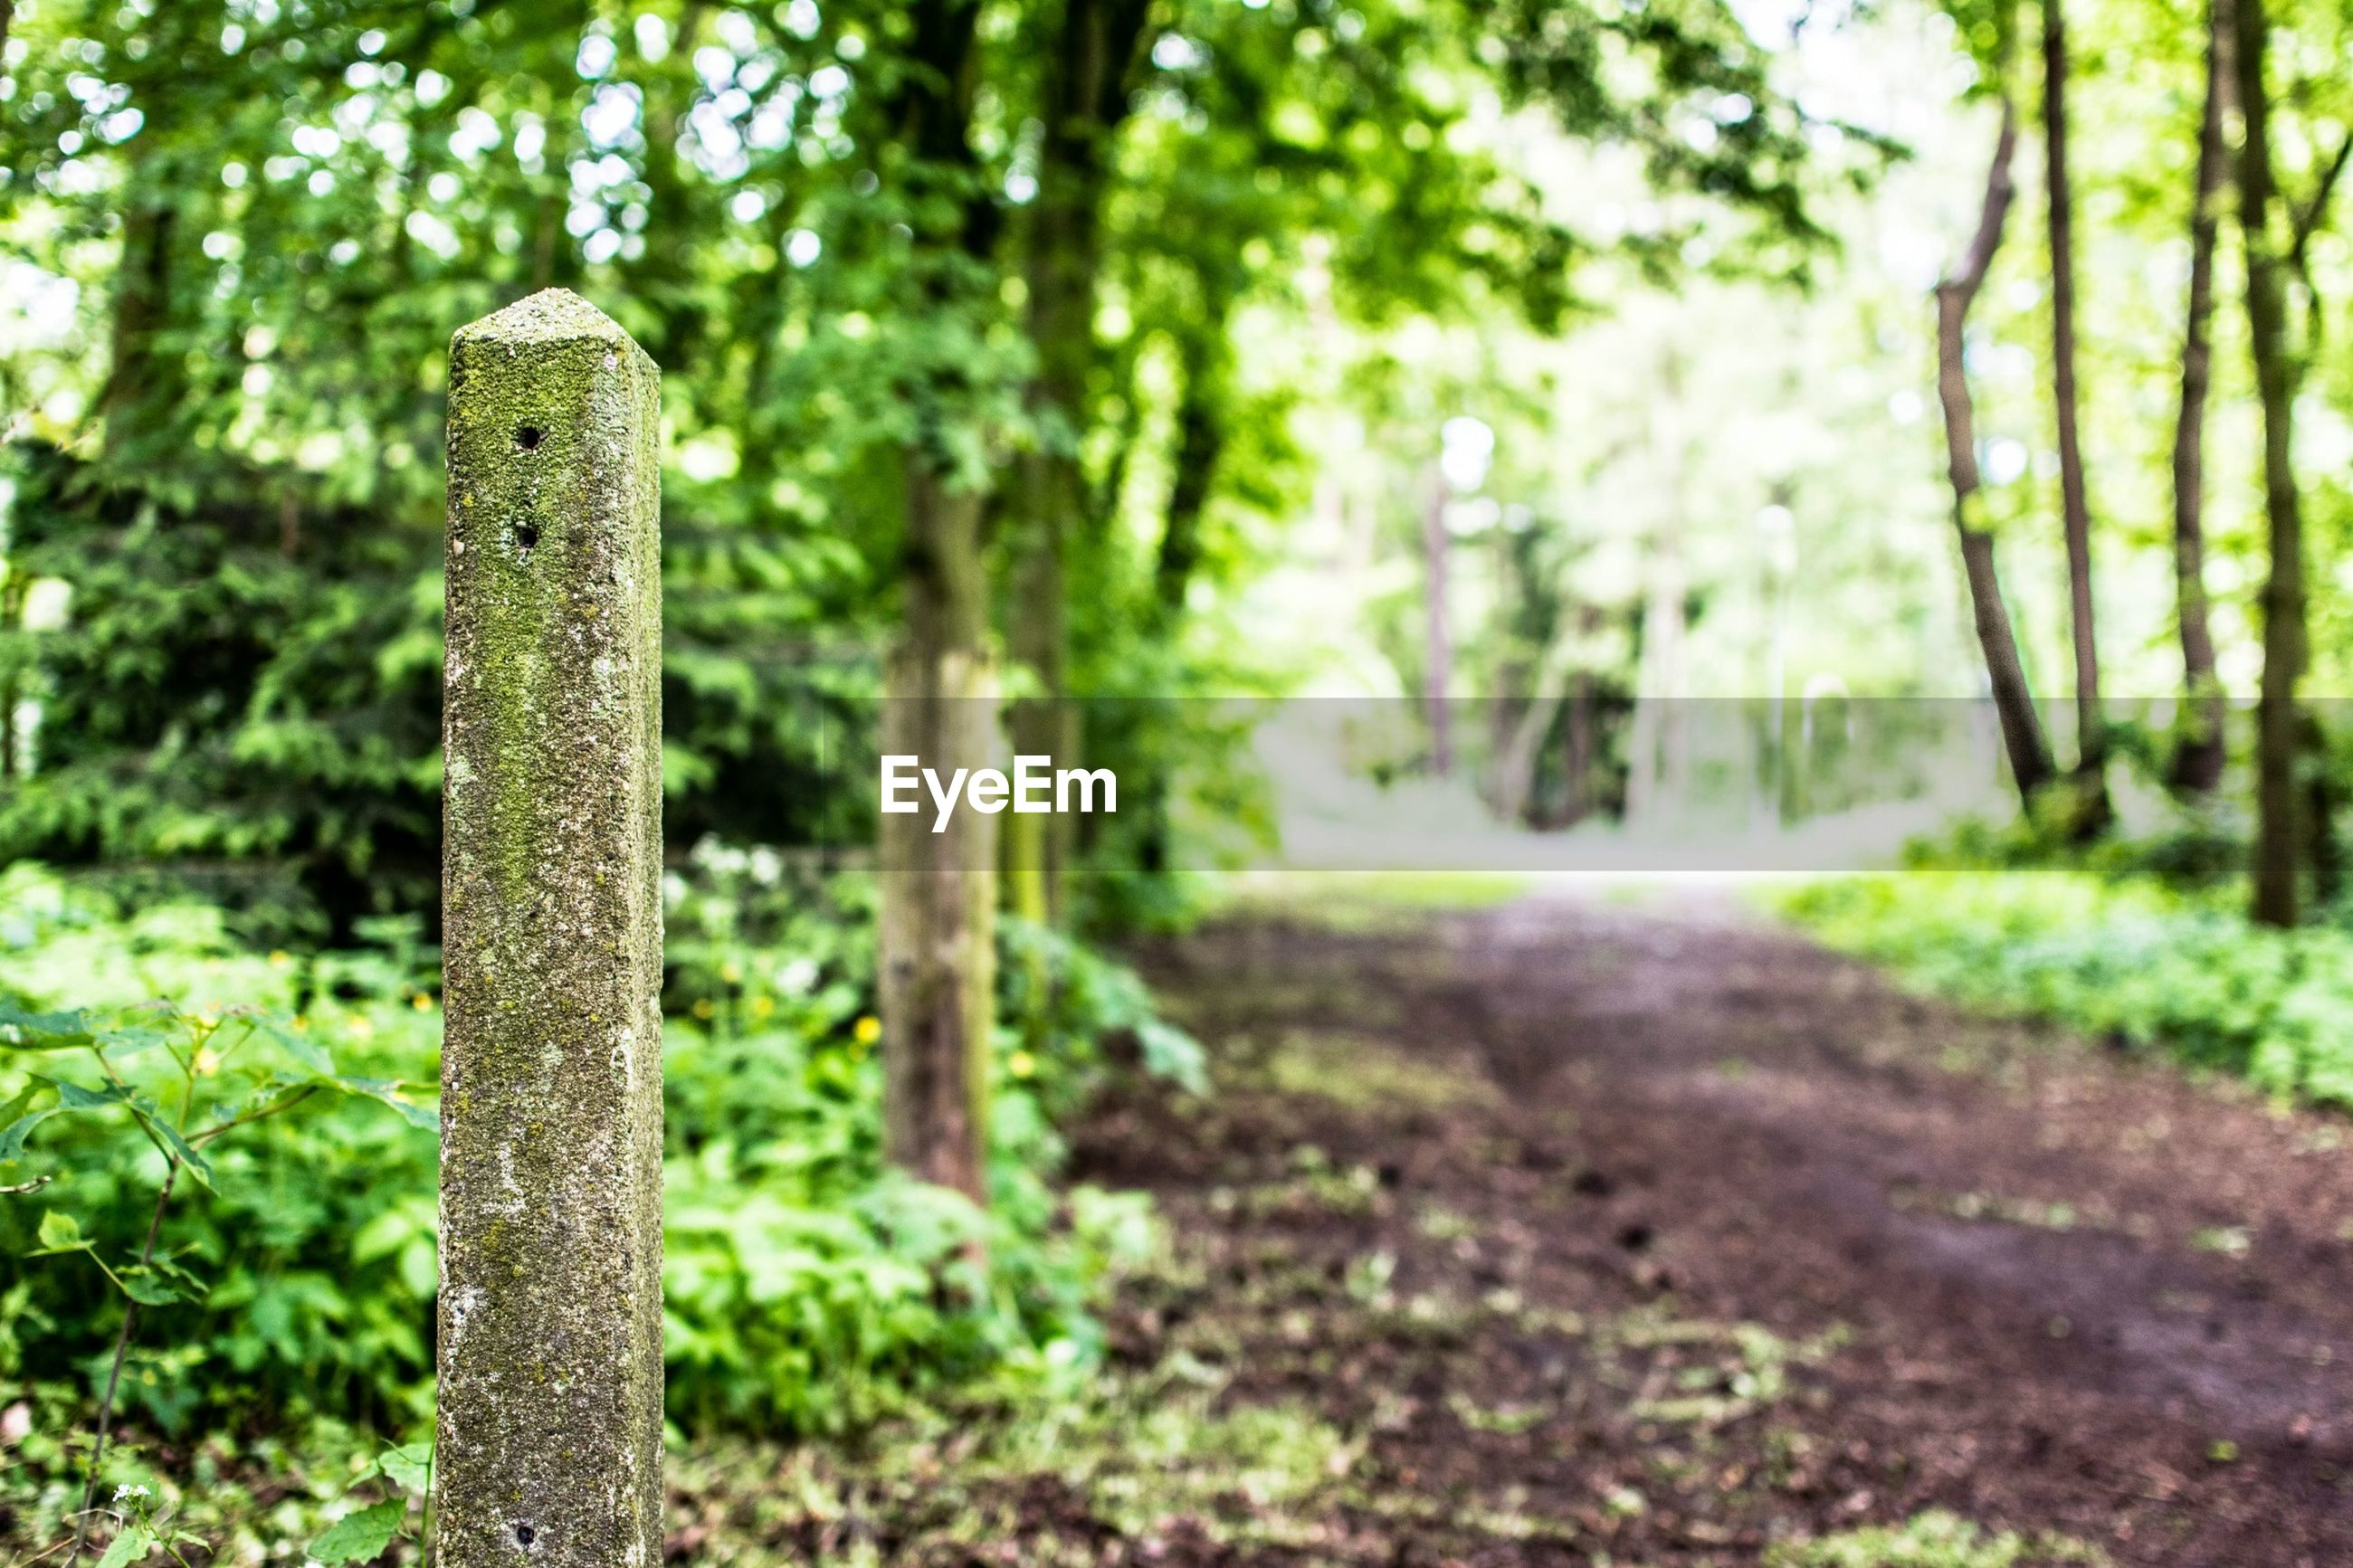 tree, forest, the way forward, growth, nature, tranquility, tree trunk, selective focus, focus on foreground, green color, diminishing perspective, day, tranquil scene, footpath, outdoors, no people, plant, beauty in nature, wood - material, surface level